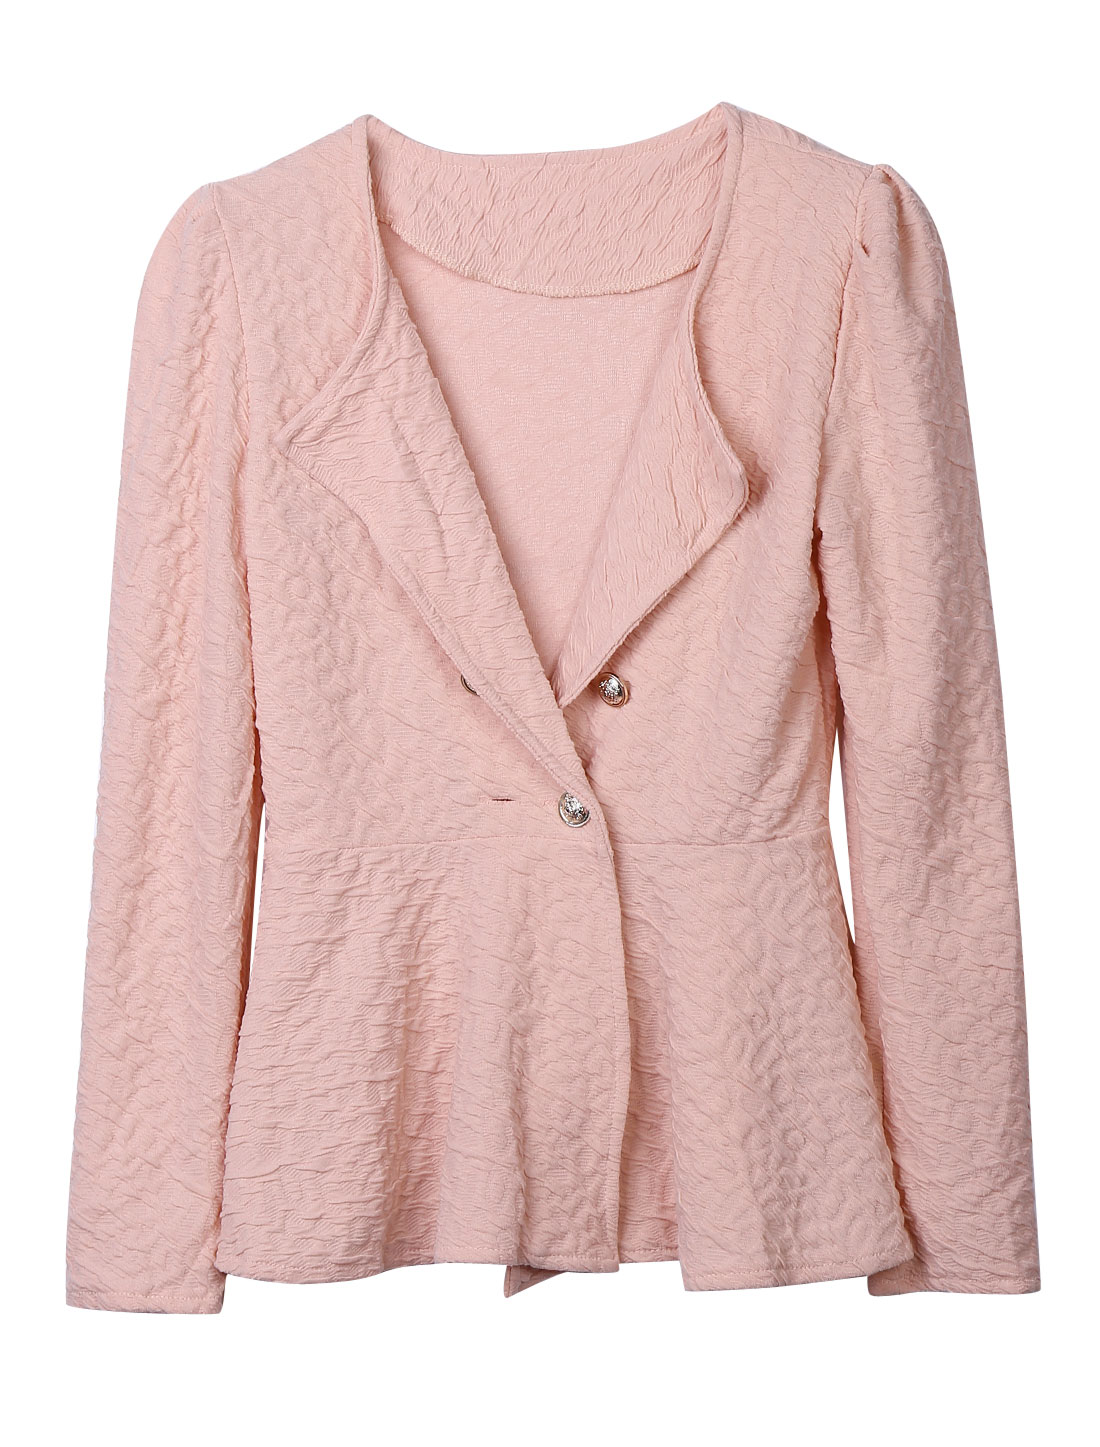 Ladies Pink One Button Closure Ruffled Detail Hem Long Sleeves Texture Jacket S